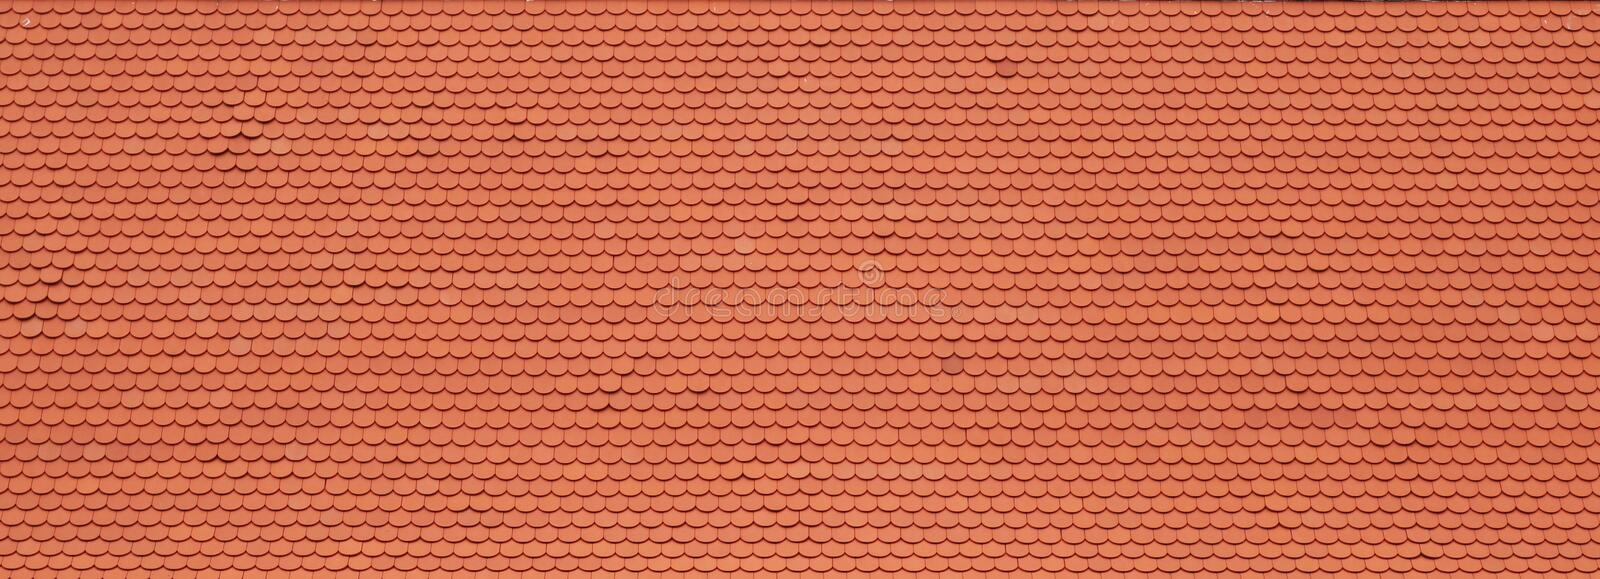 Red roof tile. Texture background stock images